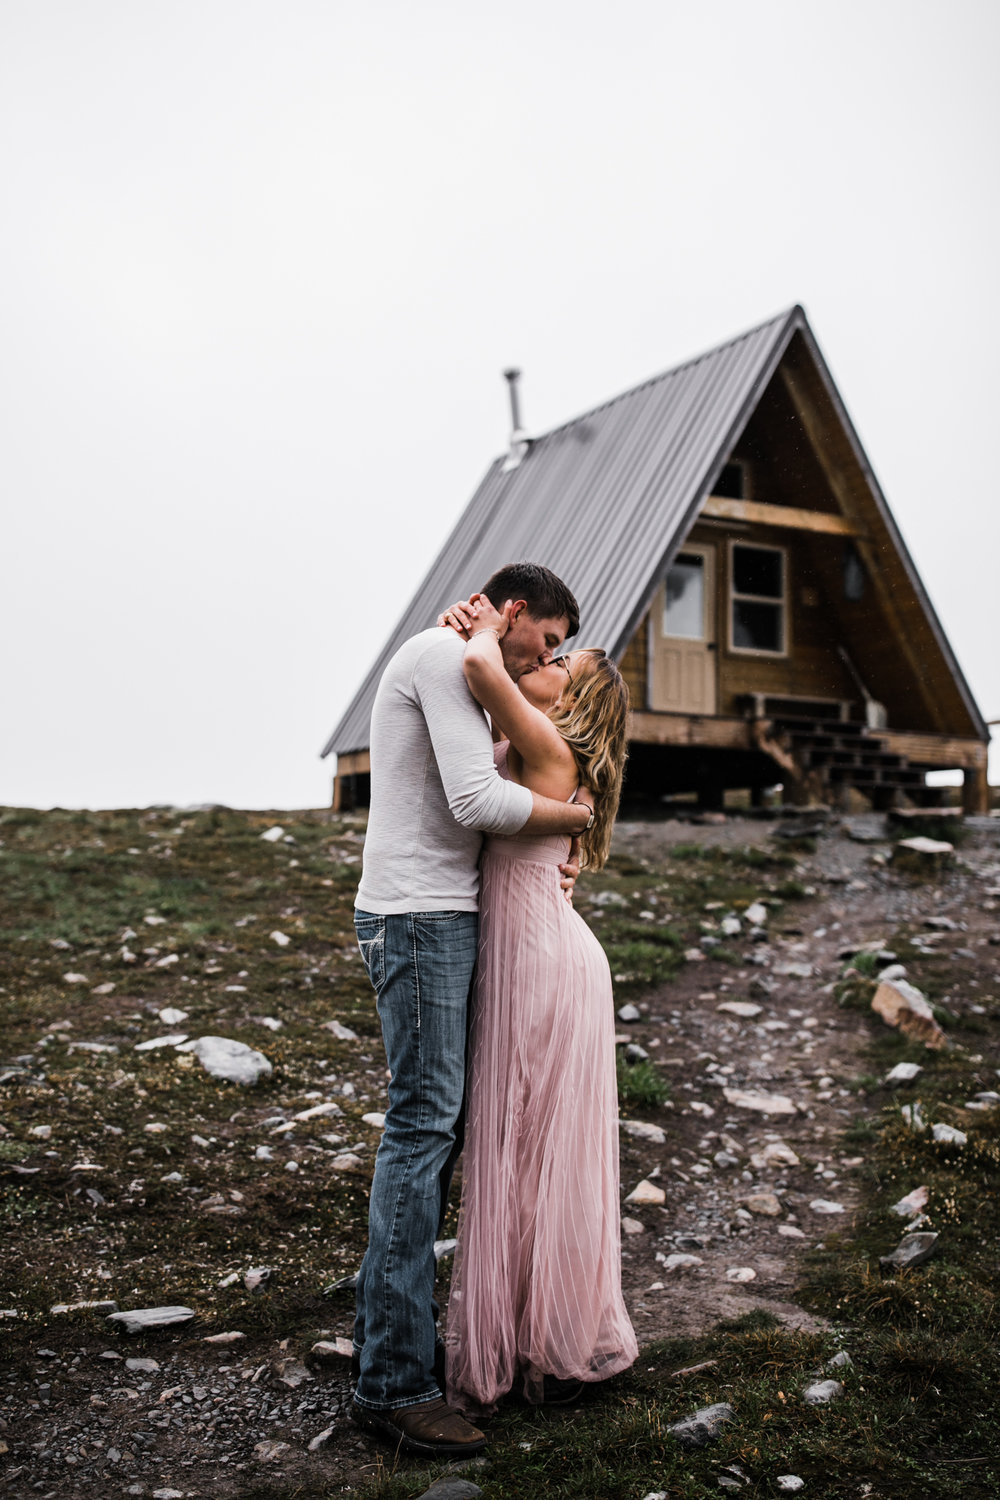 adventure engagement session in alaska | alyeska, girdwood elopement photographer | alaska destination wedding photographer | the hearnes adventure photography